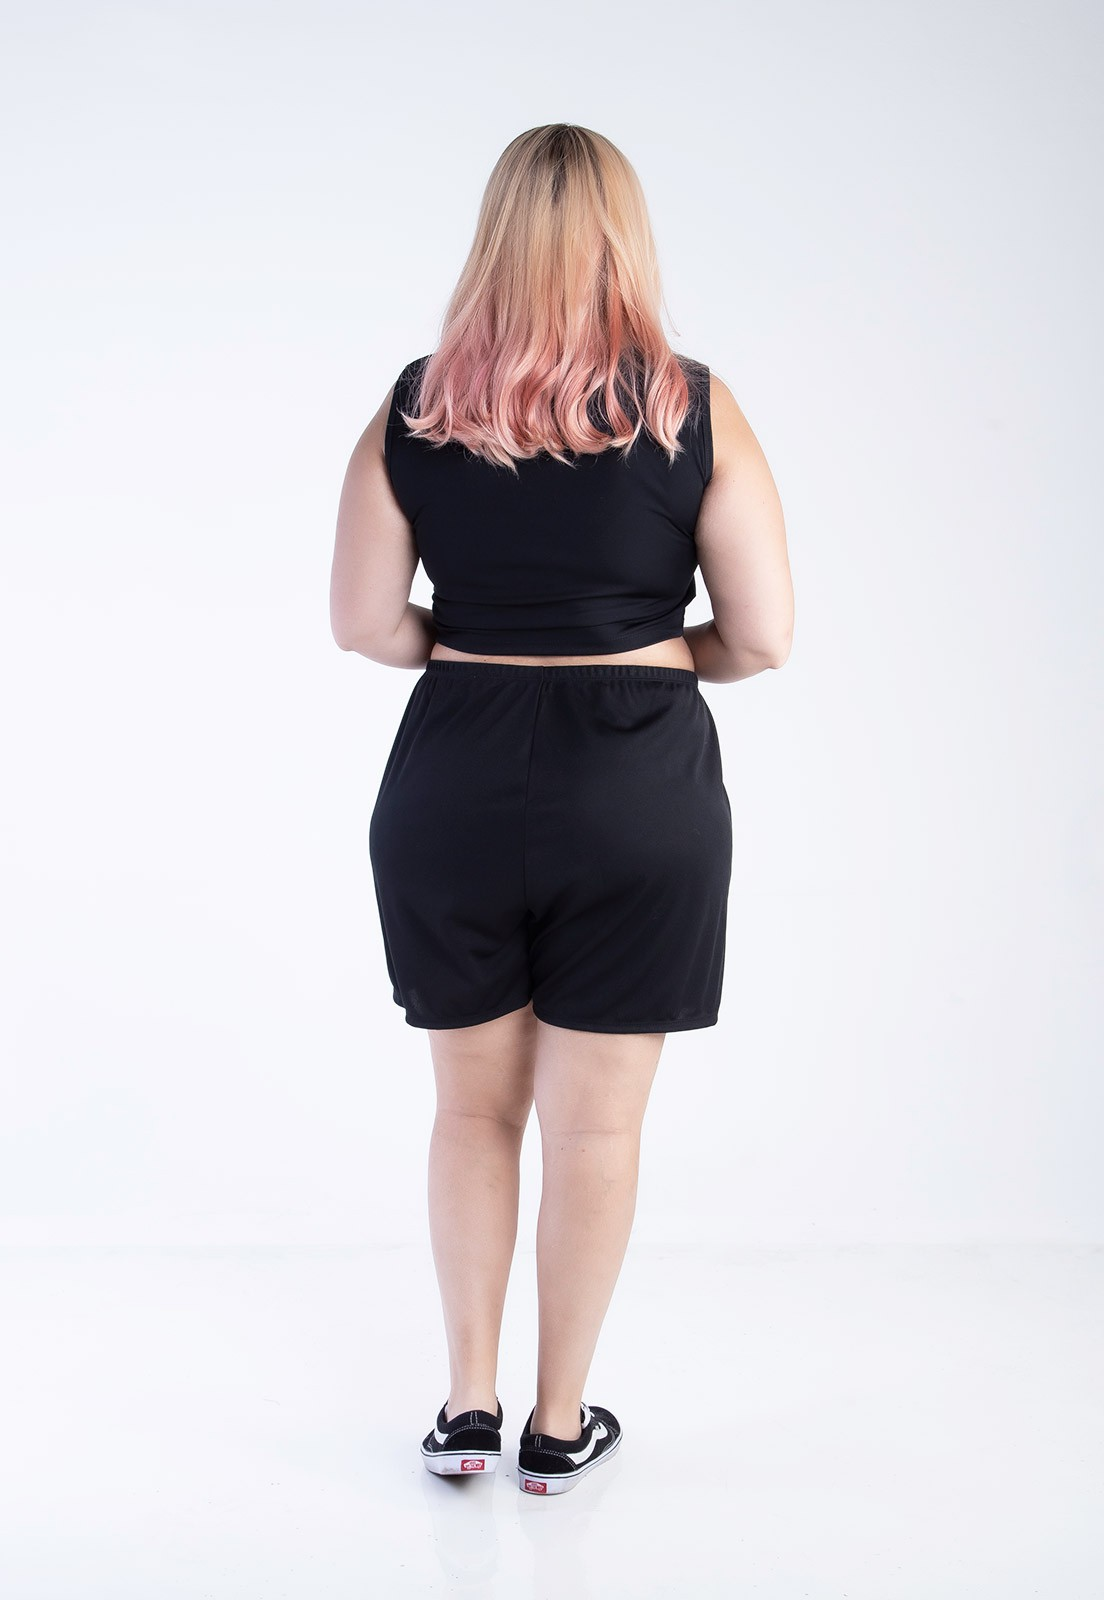 Cropped plus size com barra ondulada